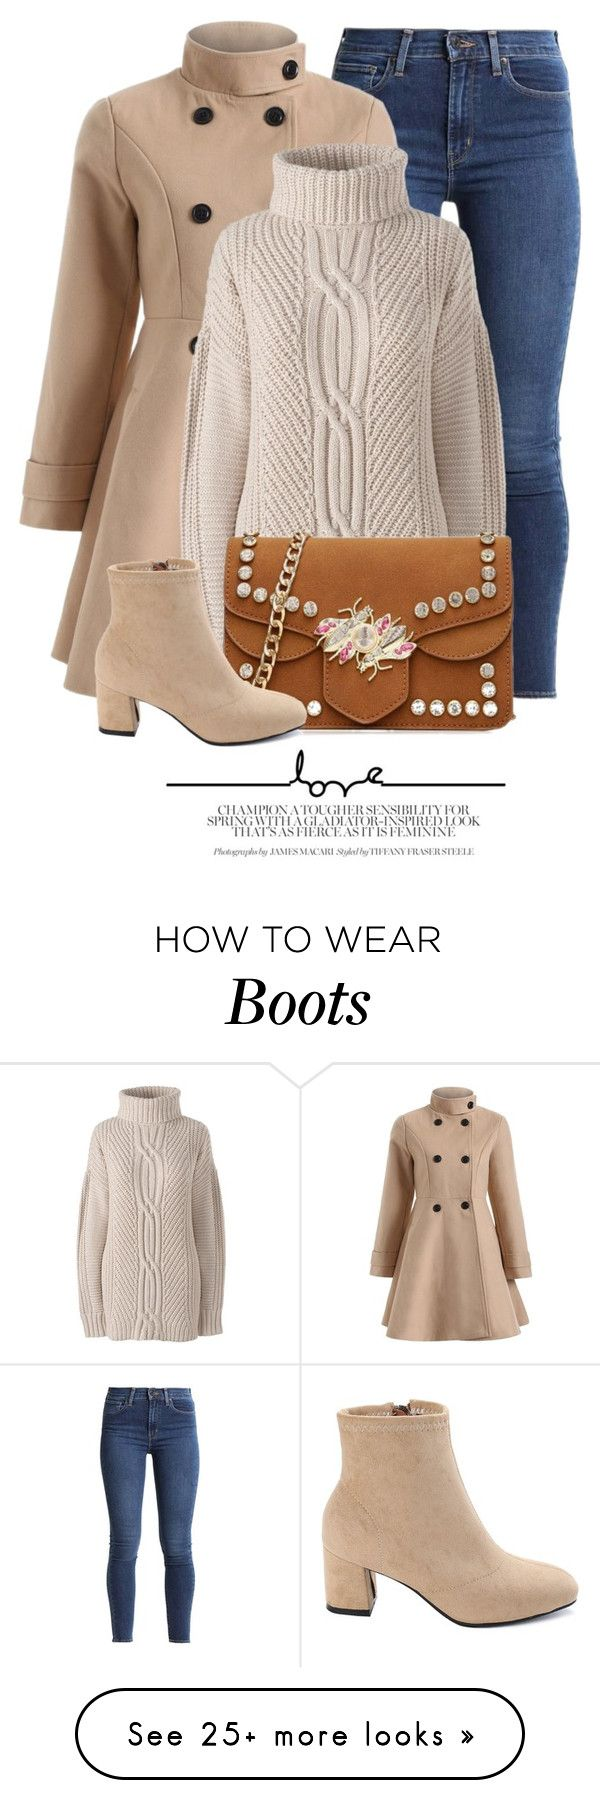 """Nine"" by monmondefou on Polyvore featuring Lands' End and plus size clothing"